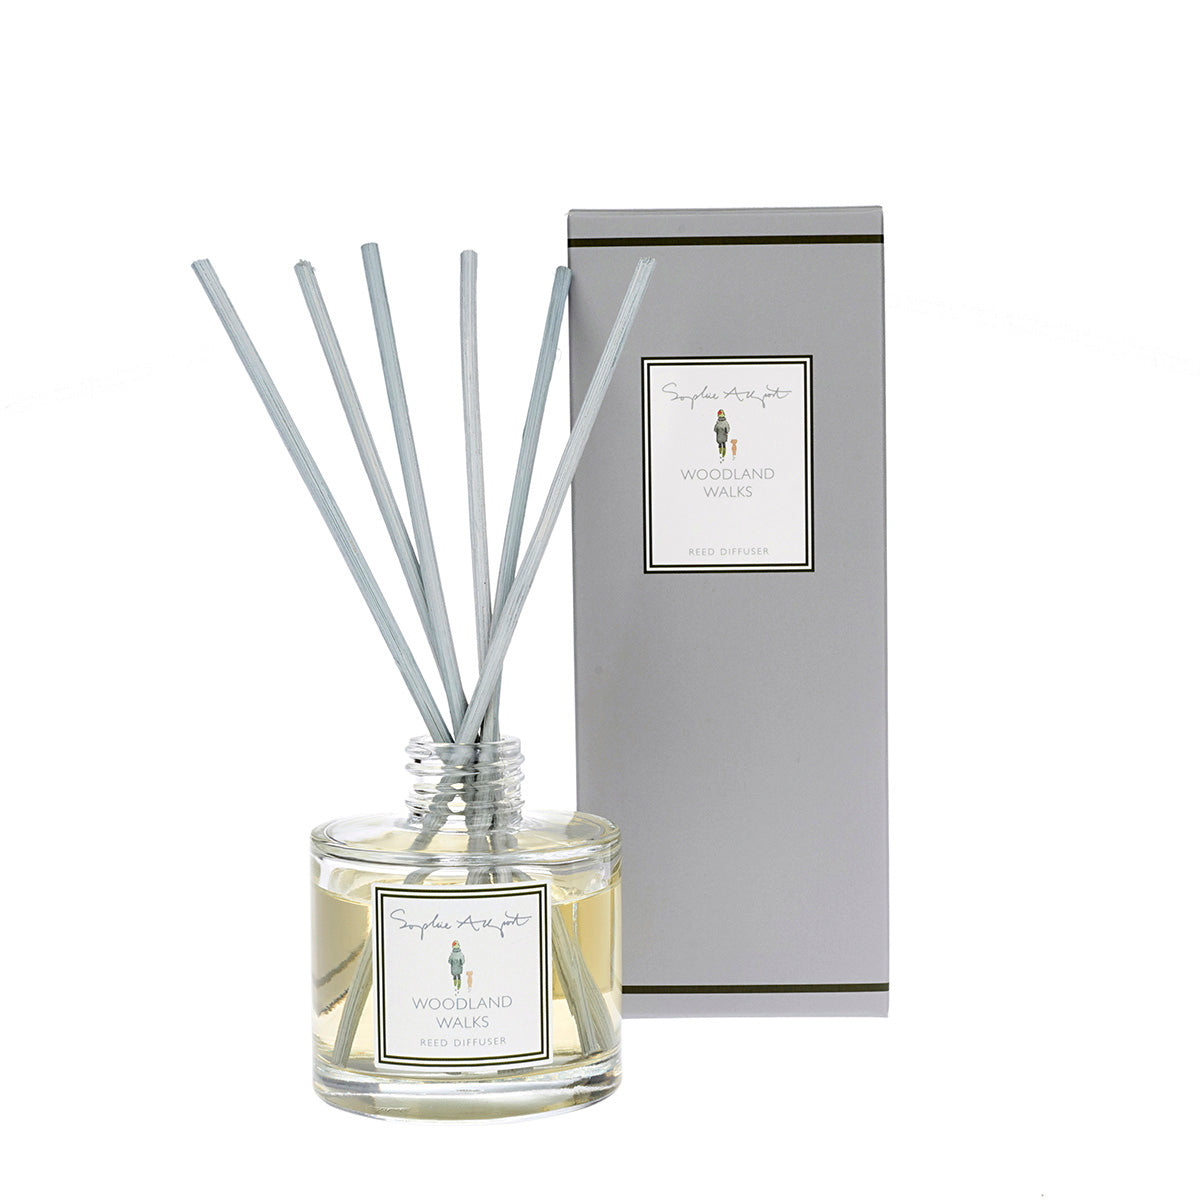 Woodland Walks Scented Reed Diffuser